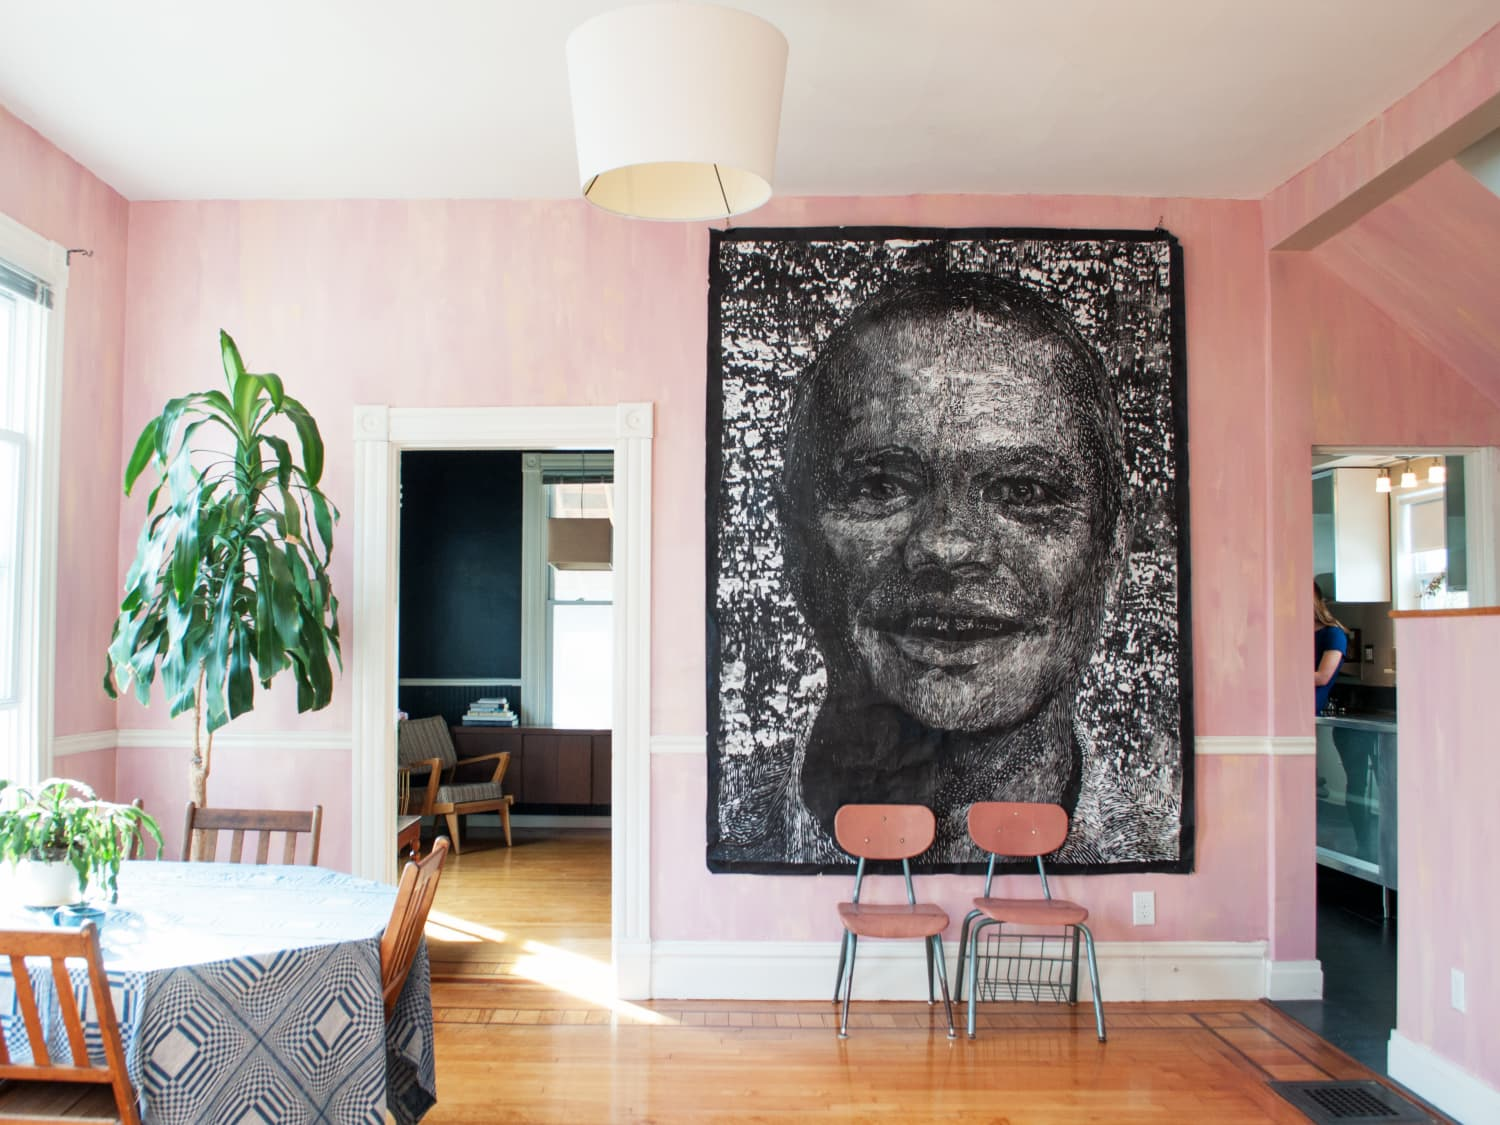 Best Large Wall Art - Where to Buy Oversized Art Prints   Apartment Therapy